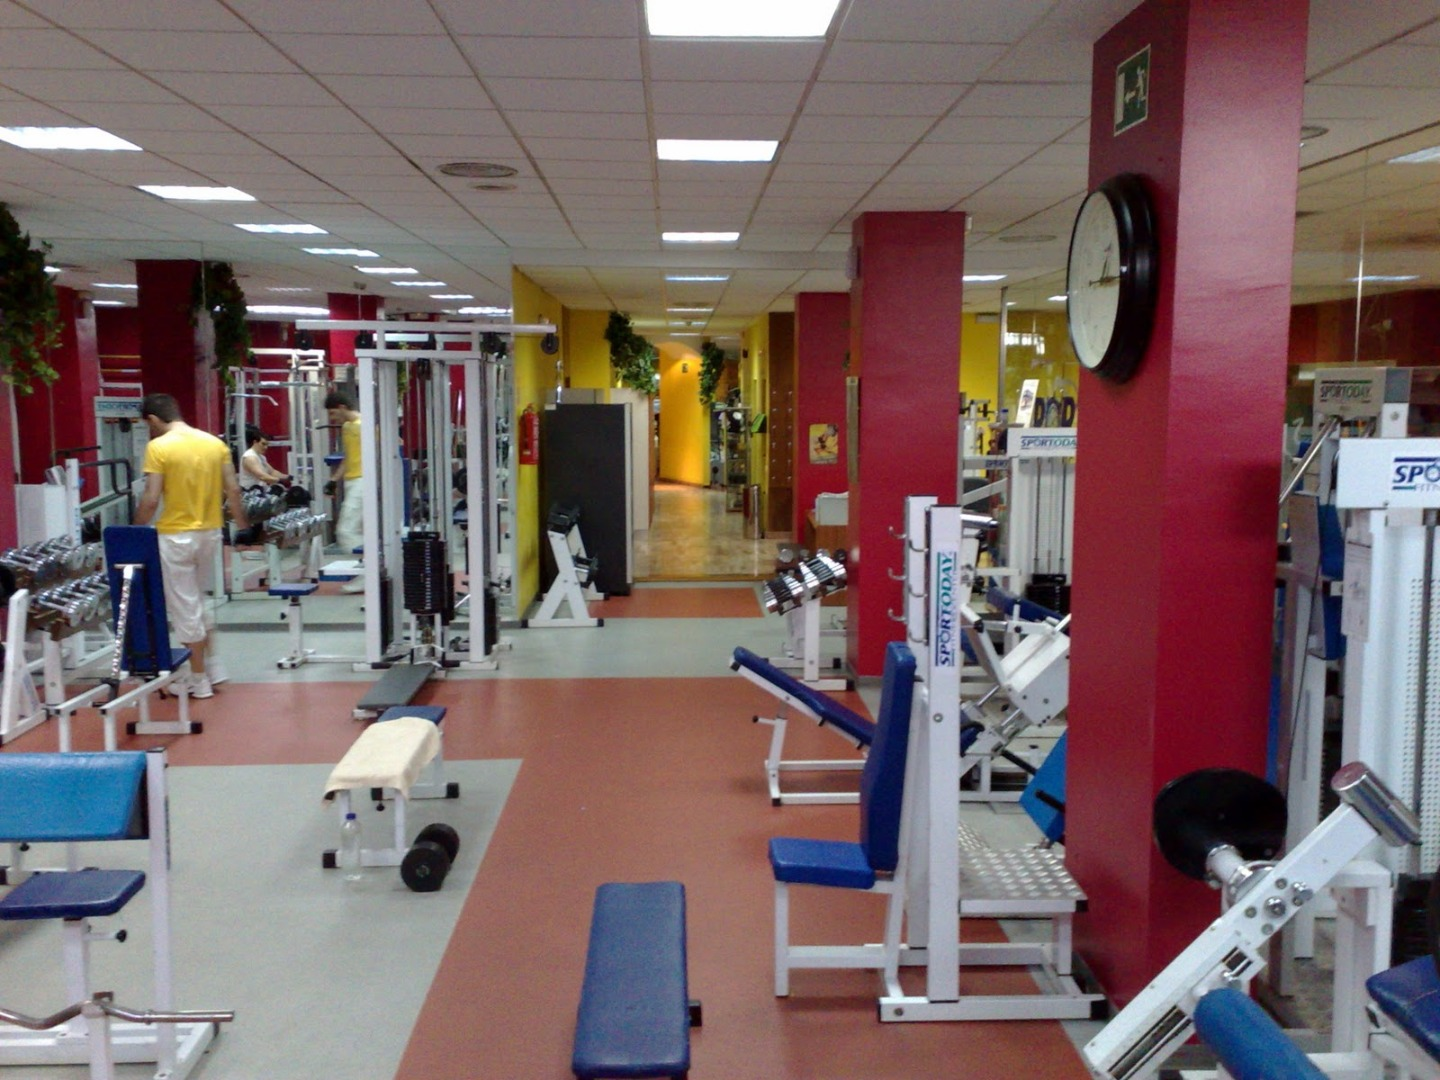 oferta gimnasio sportoday fitness center madrid gymforless